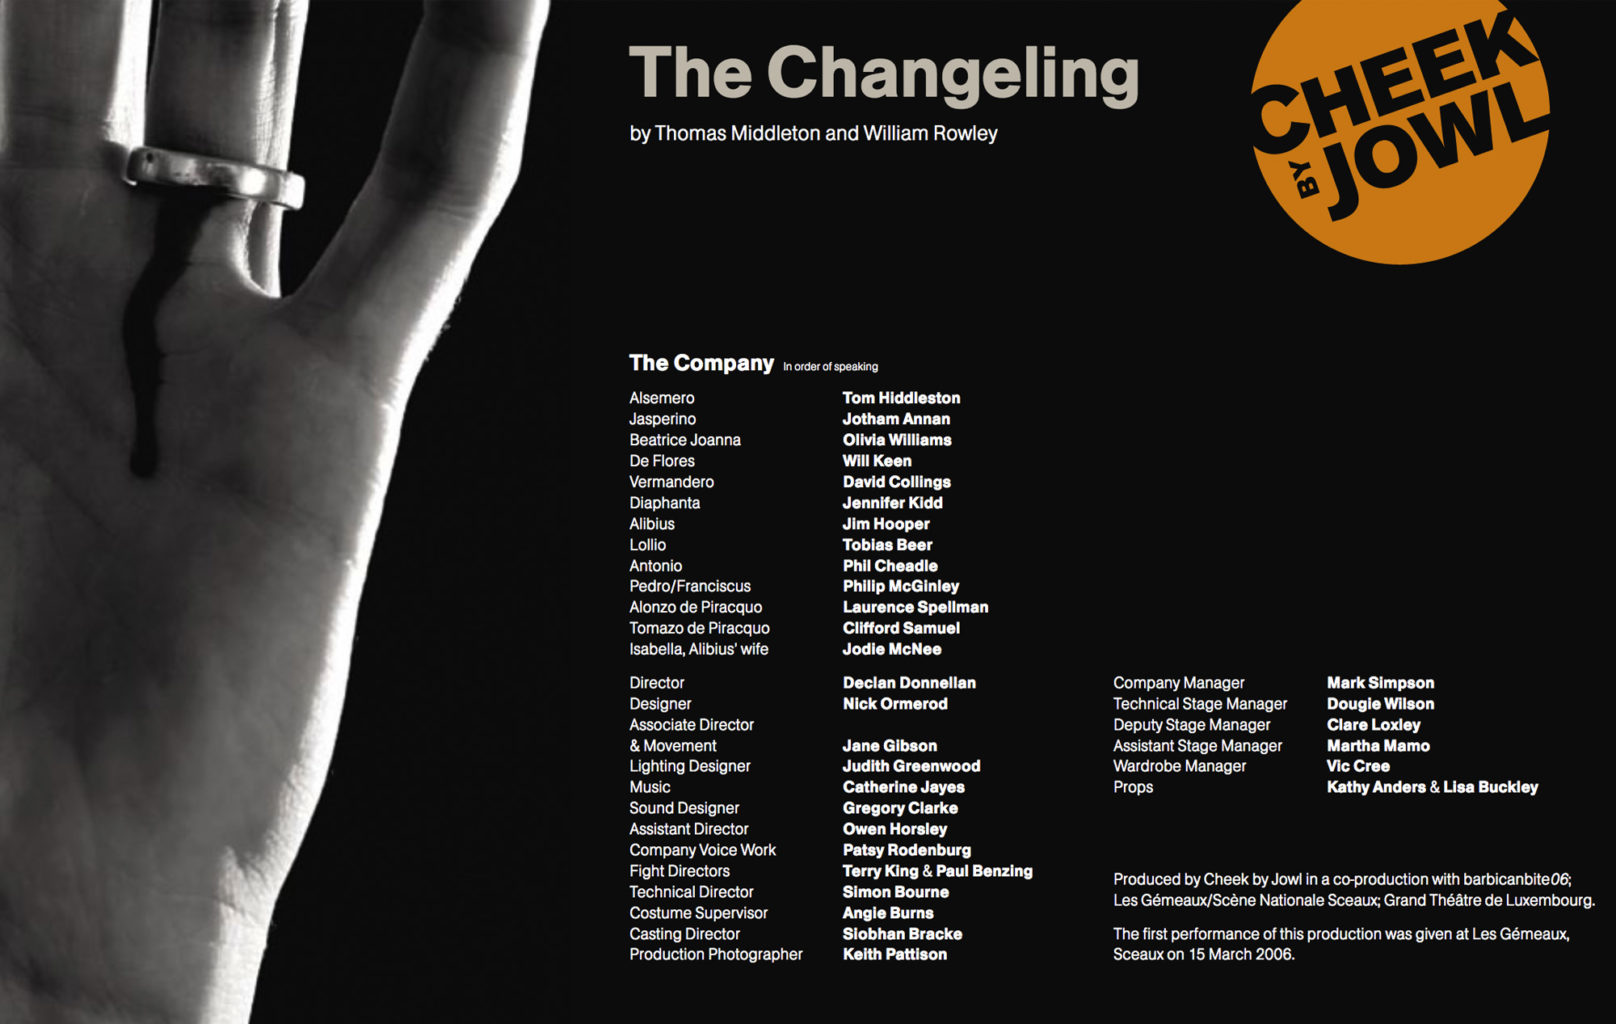 Programme for Cheek by Jowl's production of The Changeling